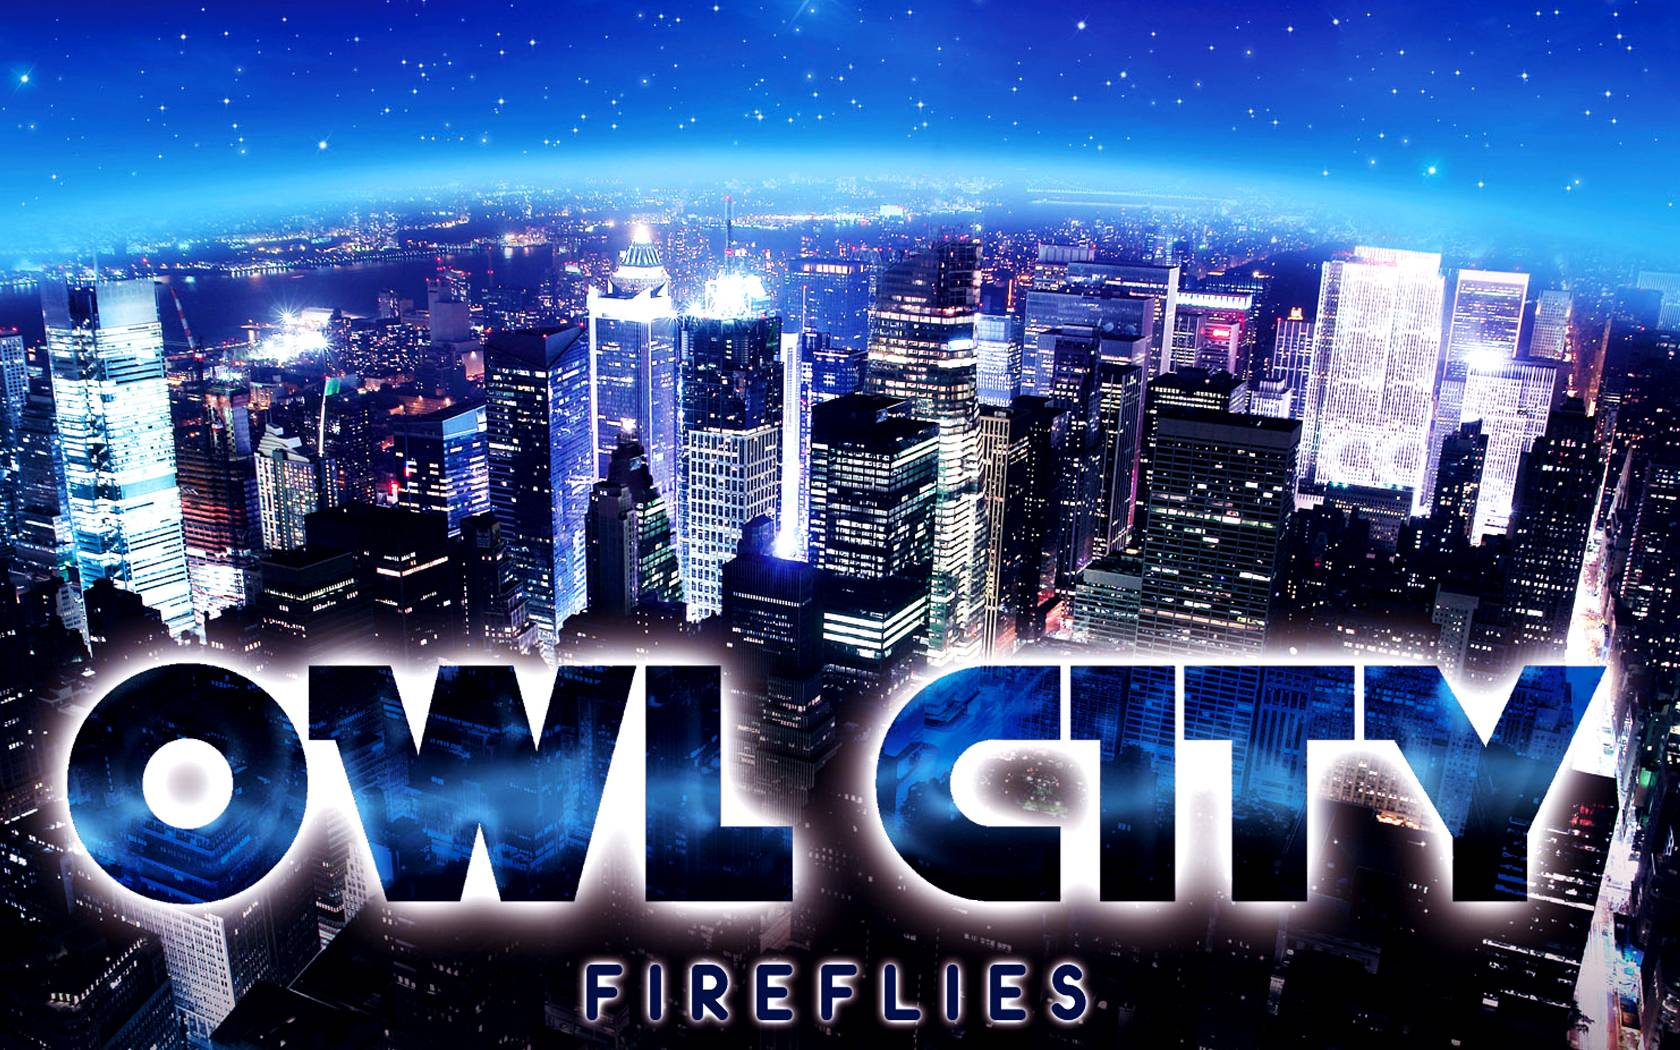 Owl City Fireflies Wallpaper